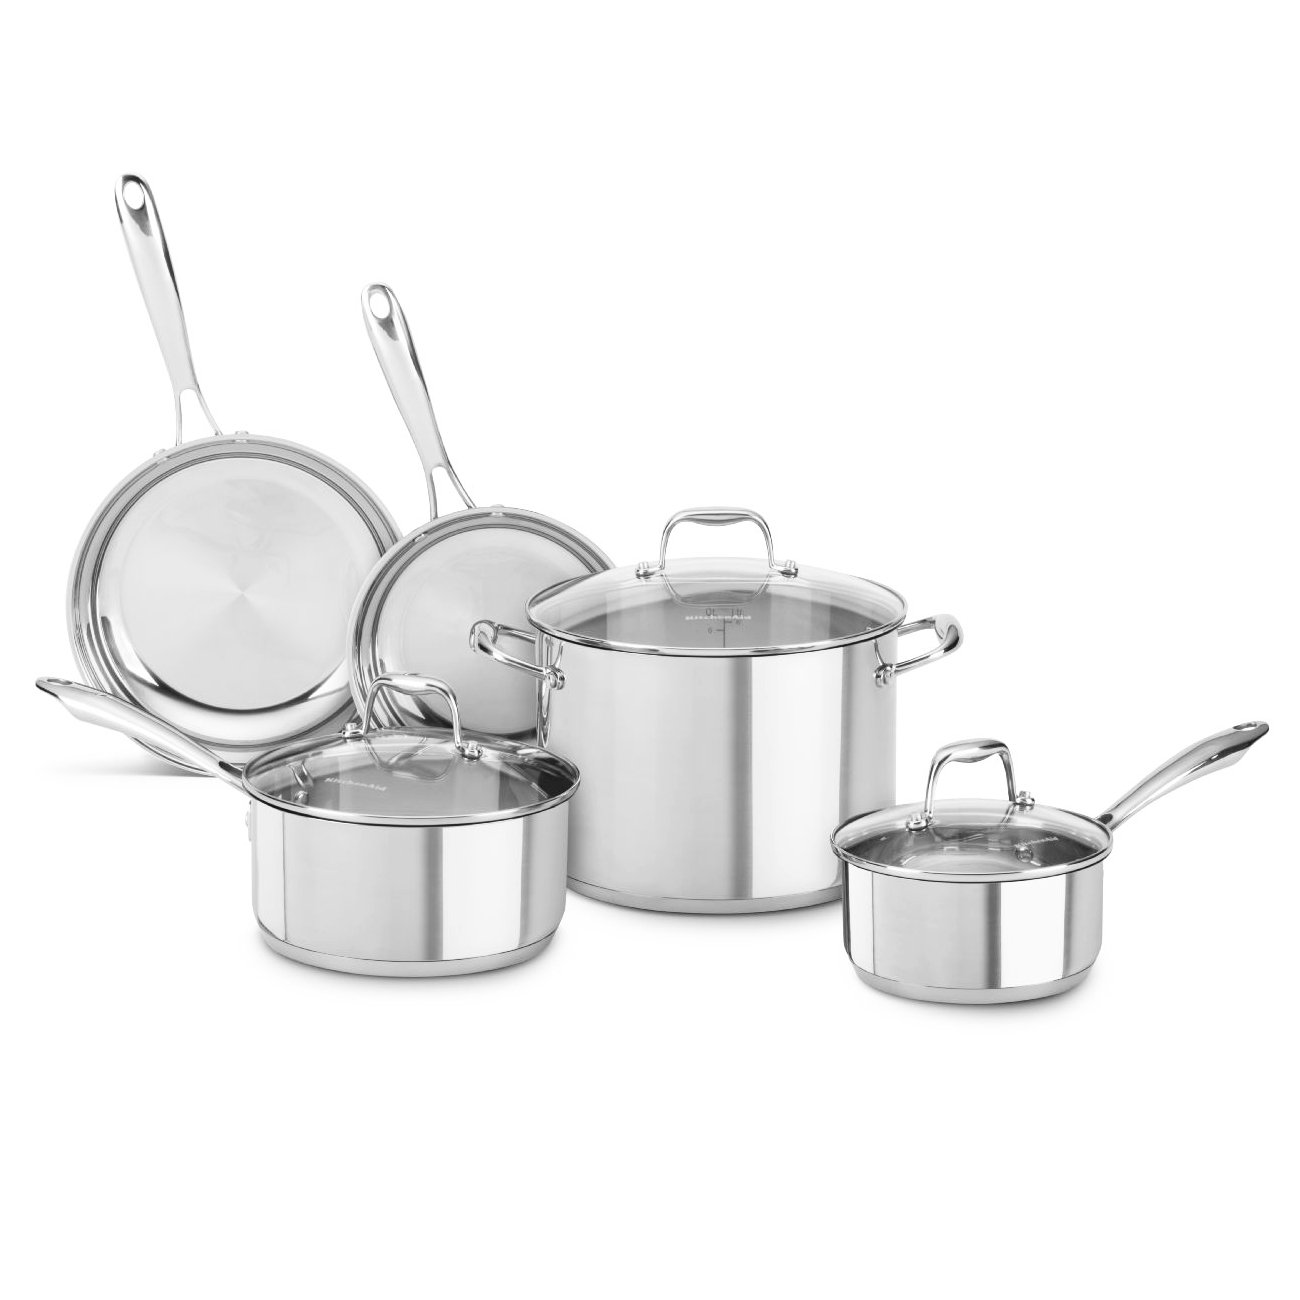 Amazon.com: KitchenAid KCSS08LS Stainless Steel 8-Piece Cookware ...